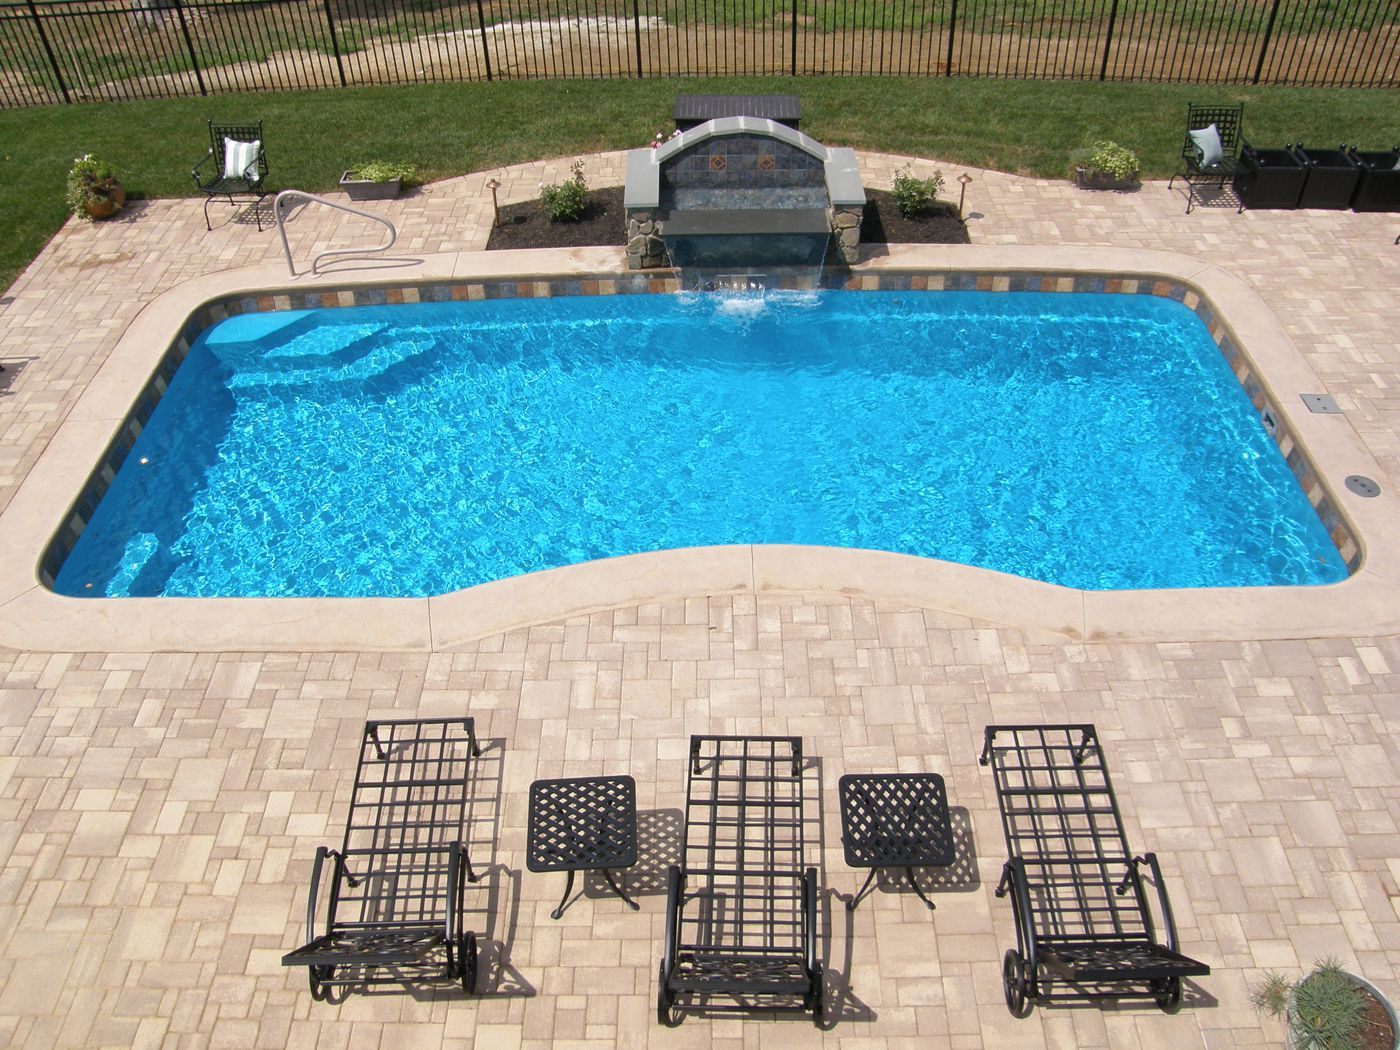 Inground pool cost guide for Pool design mistakes